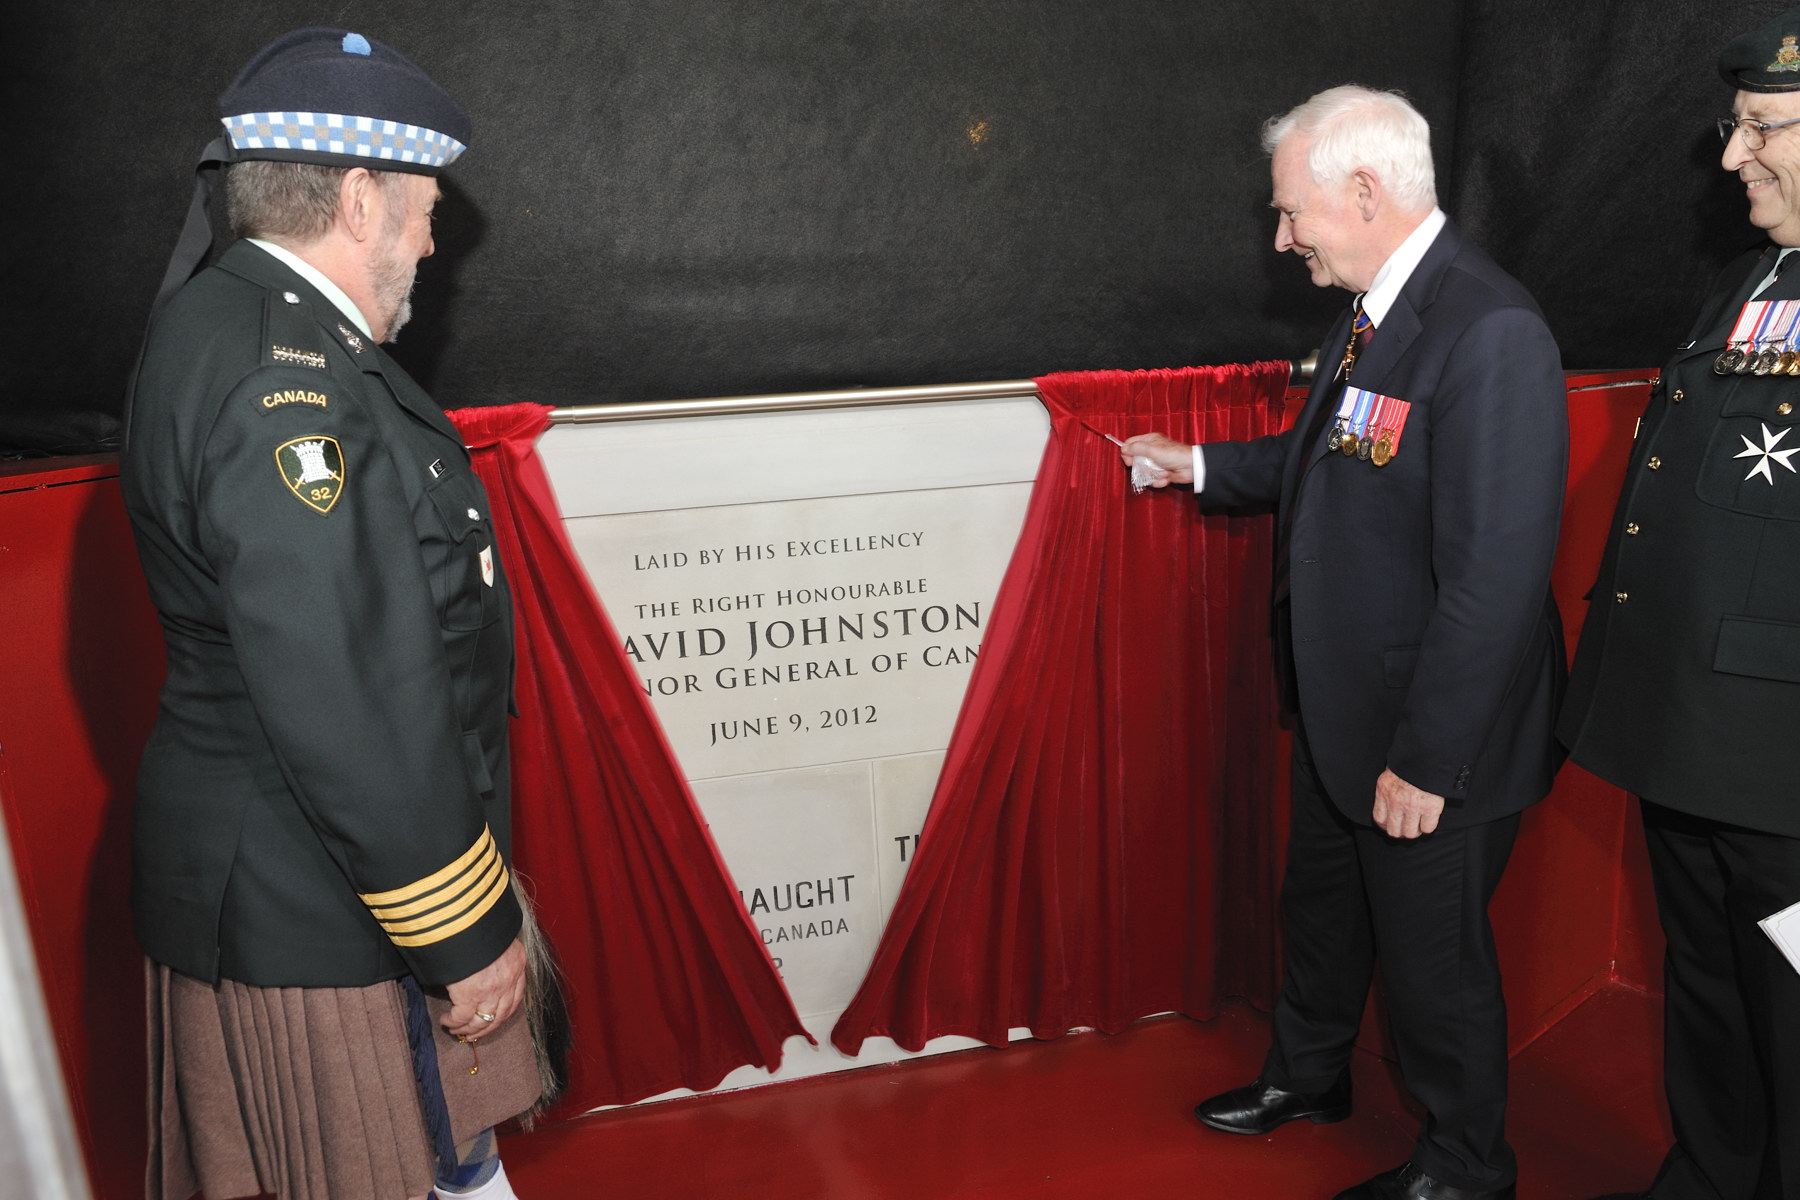 His Excellency then unveiled the cornerstone of RCMI's new site, which is scheduled to open in 2013.